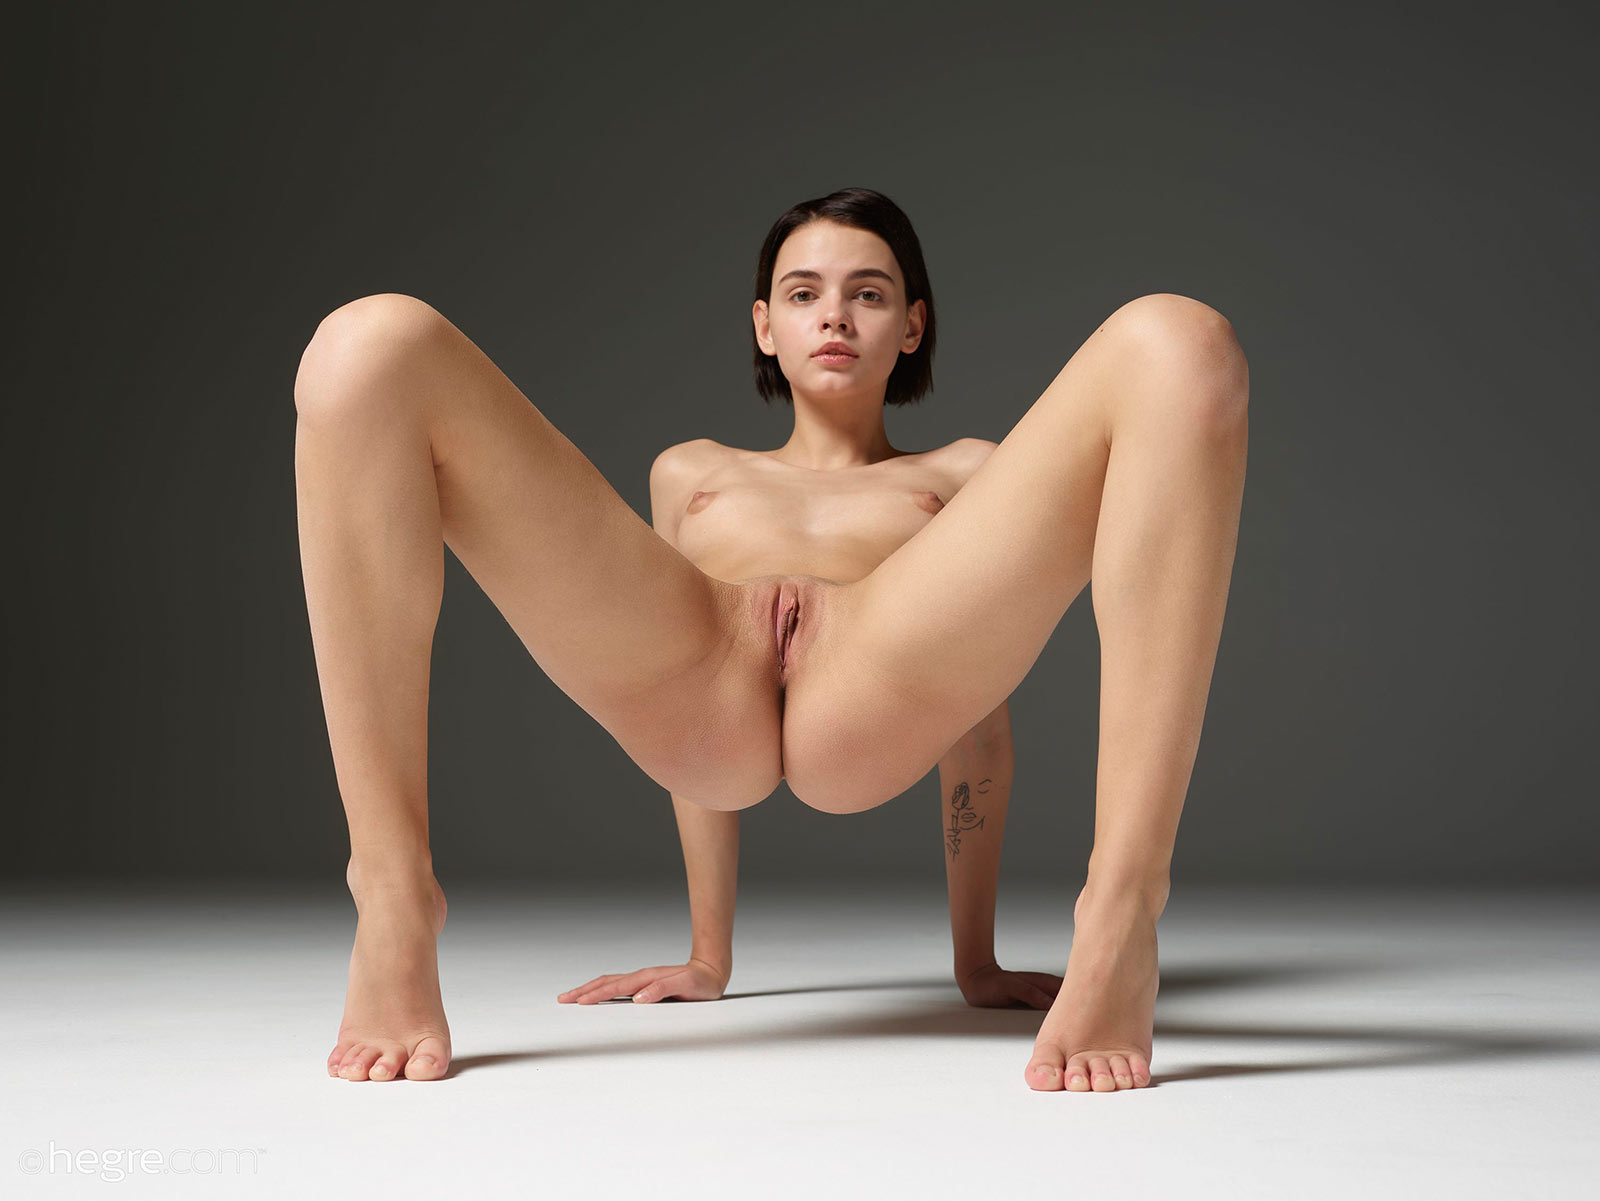 Ariel Nude Art Shot By Petter Hegre-5417